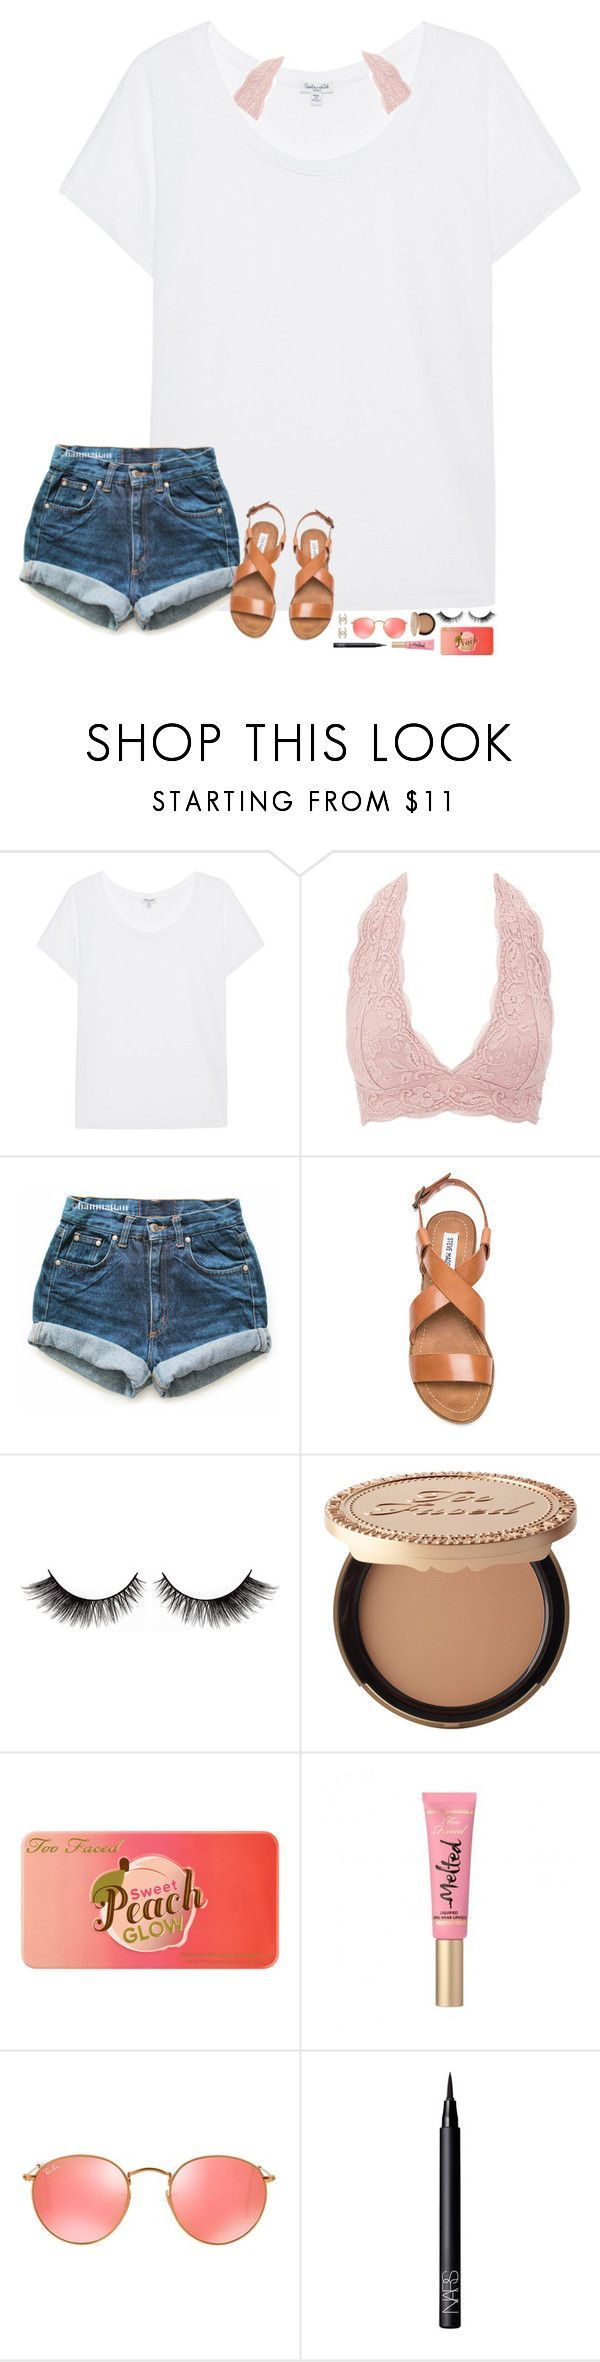 """""""d e n i m"""" by hopemarlee ❤ liked on Polyvore featuring Splendid, Charlotte Russe, Levi's, Steve Madden, Too Faced Cosmetics, Ray-Ban, NARS Cosmetics and hmsloves"""